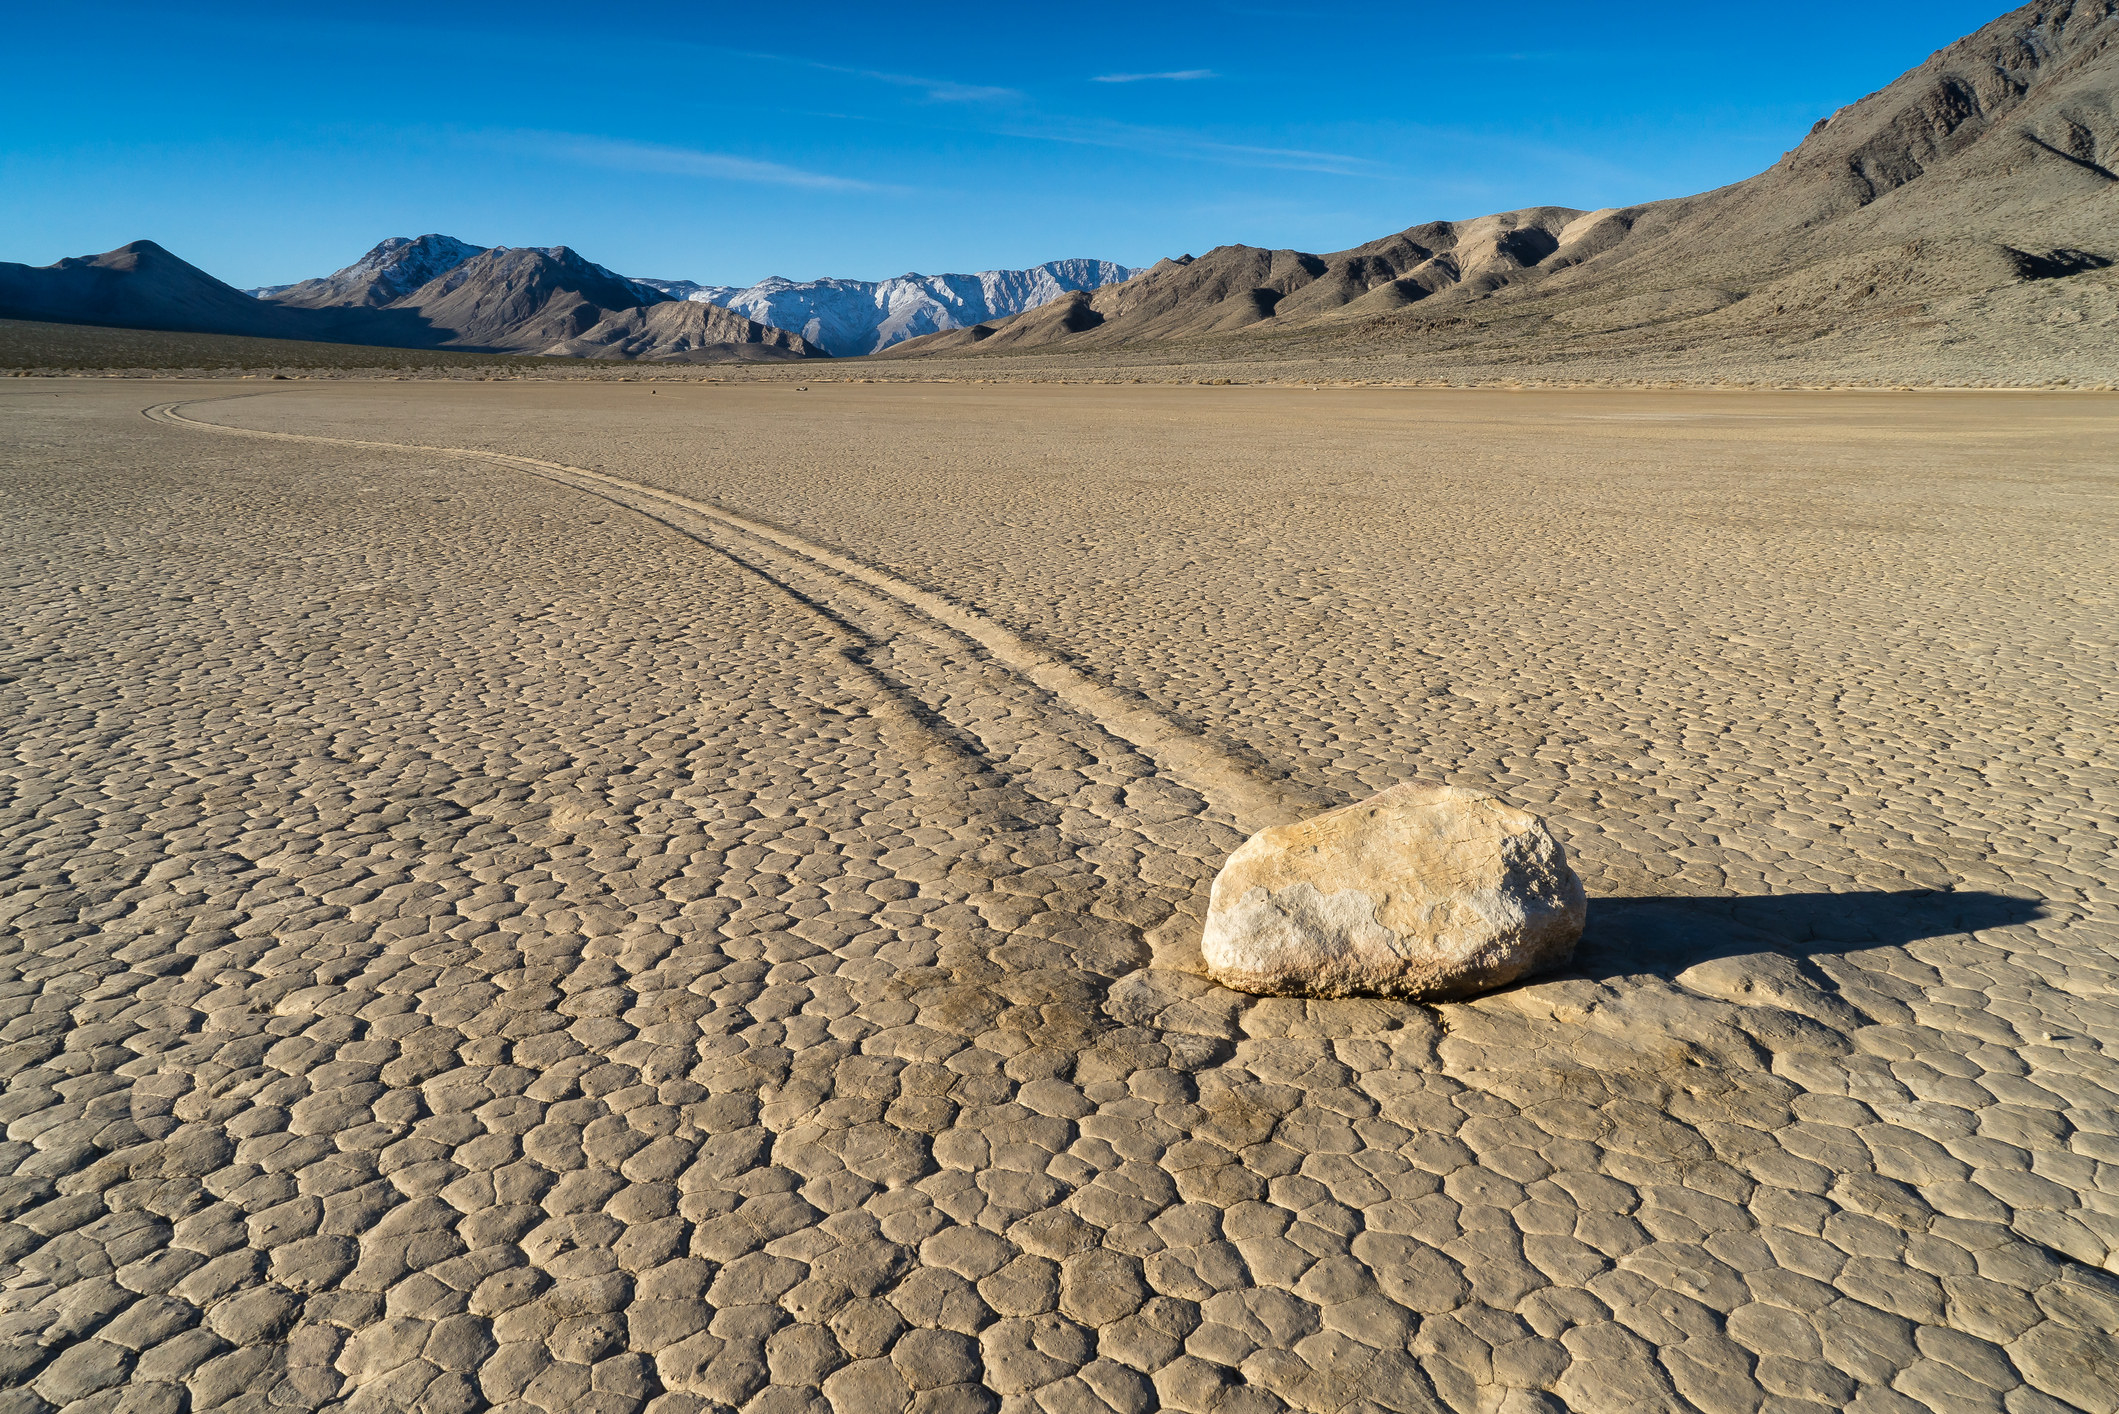 A desert setting with a moving rock's imprints in the ground.